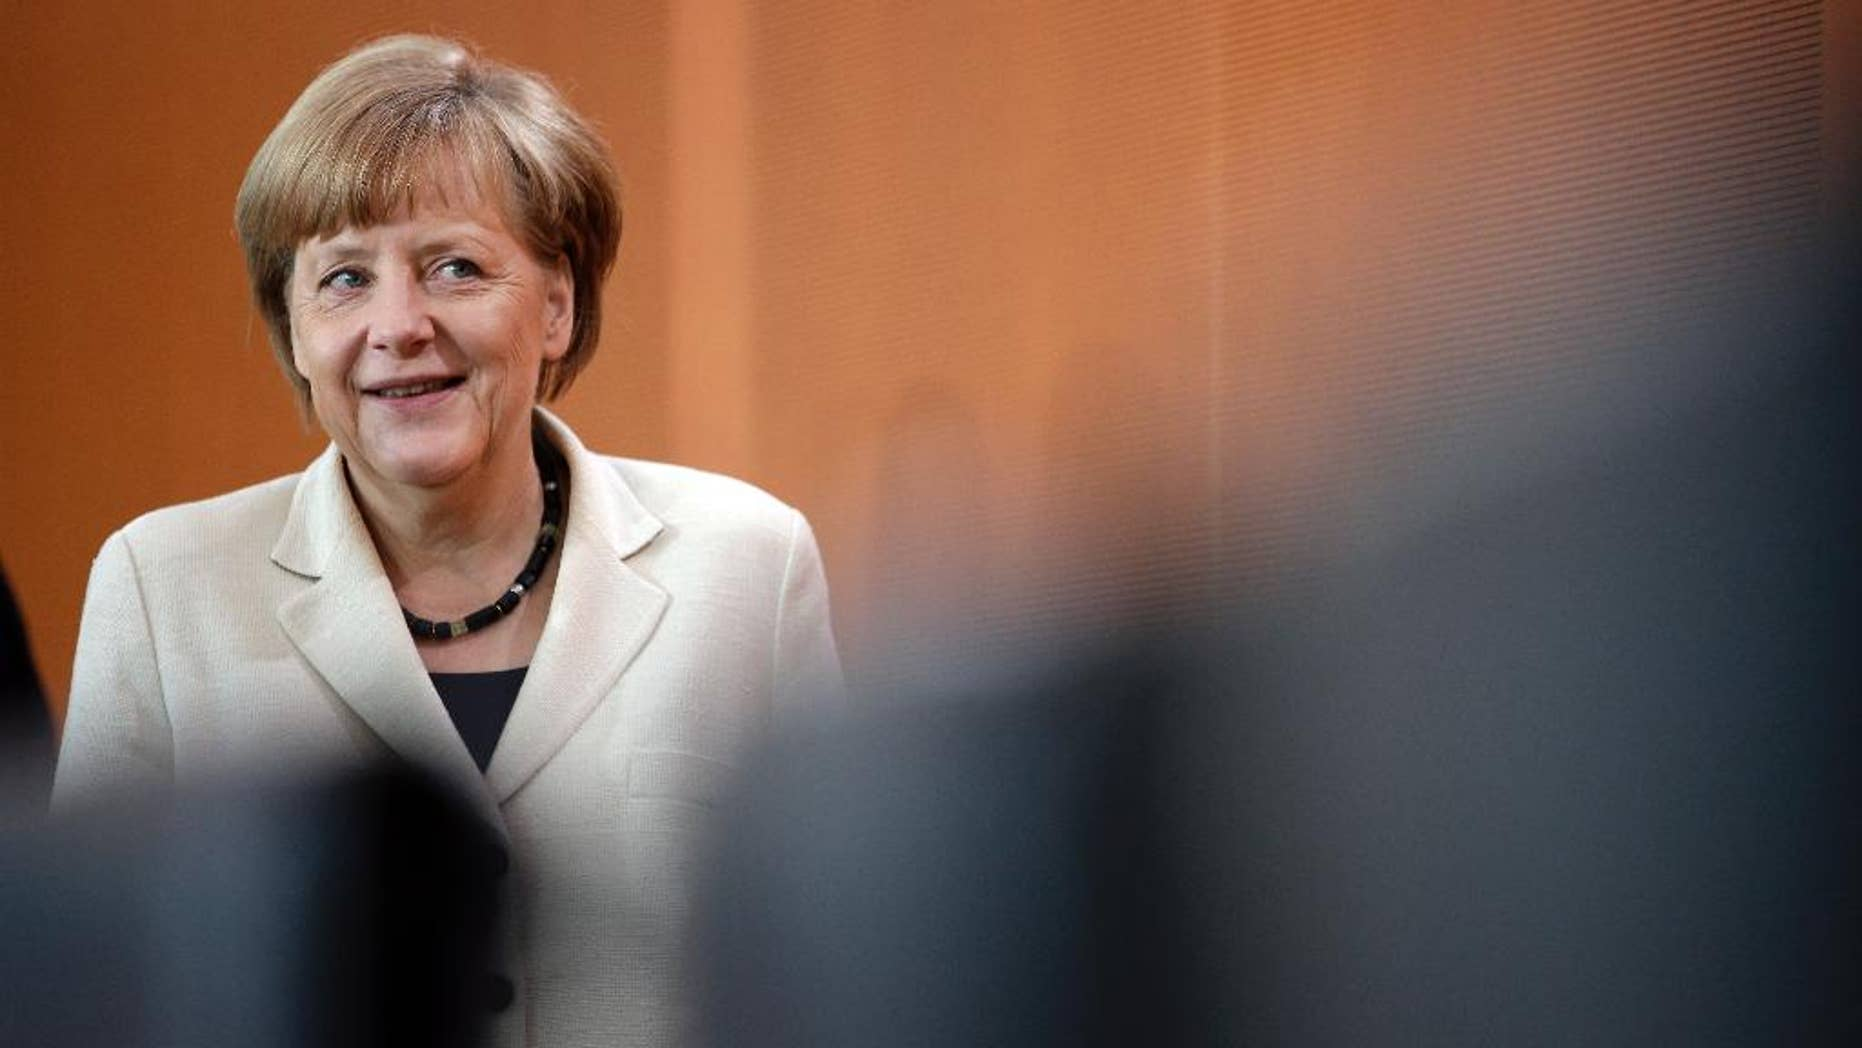 German Chancellor Angela Merkel arrives for the weekly cabinet meeting at the chancellery in Berlin, Germany, Wednesday, May 21, 2014. (AP Photo/Michael Sohn)